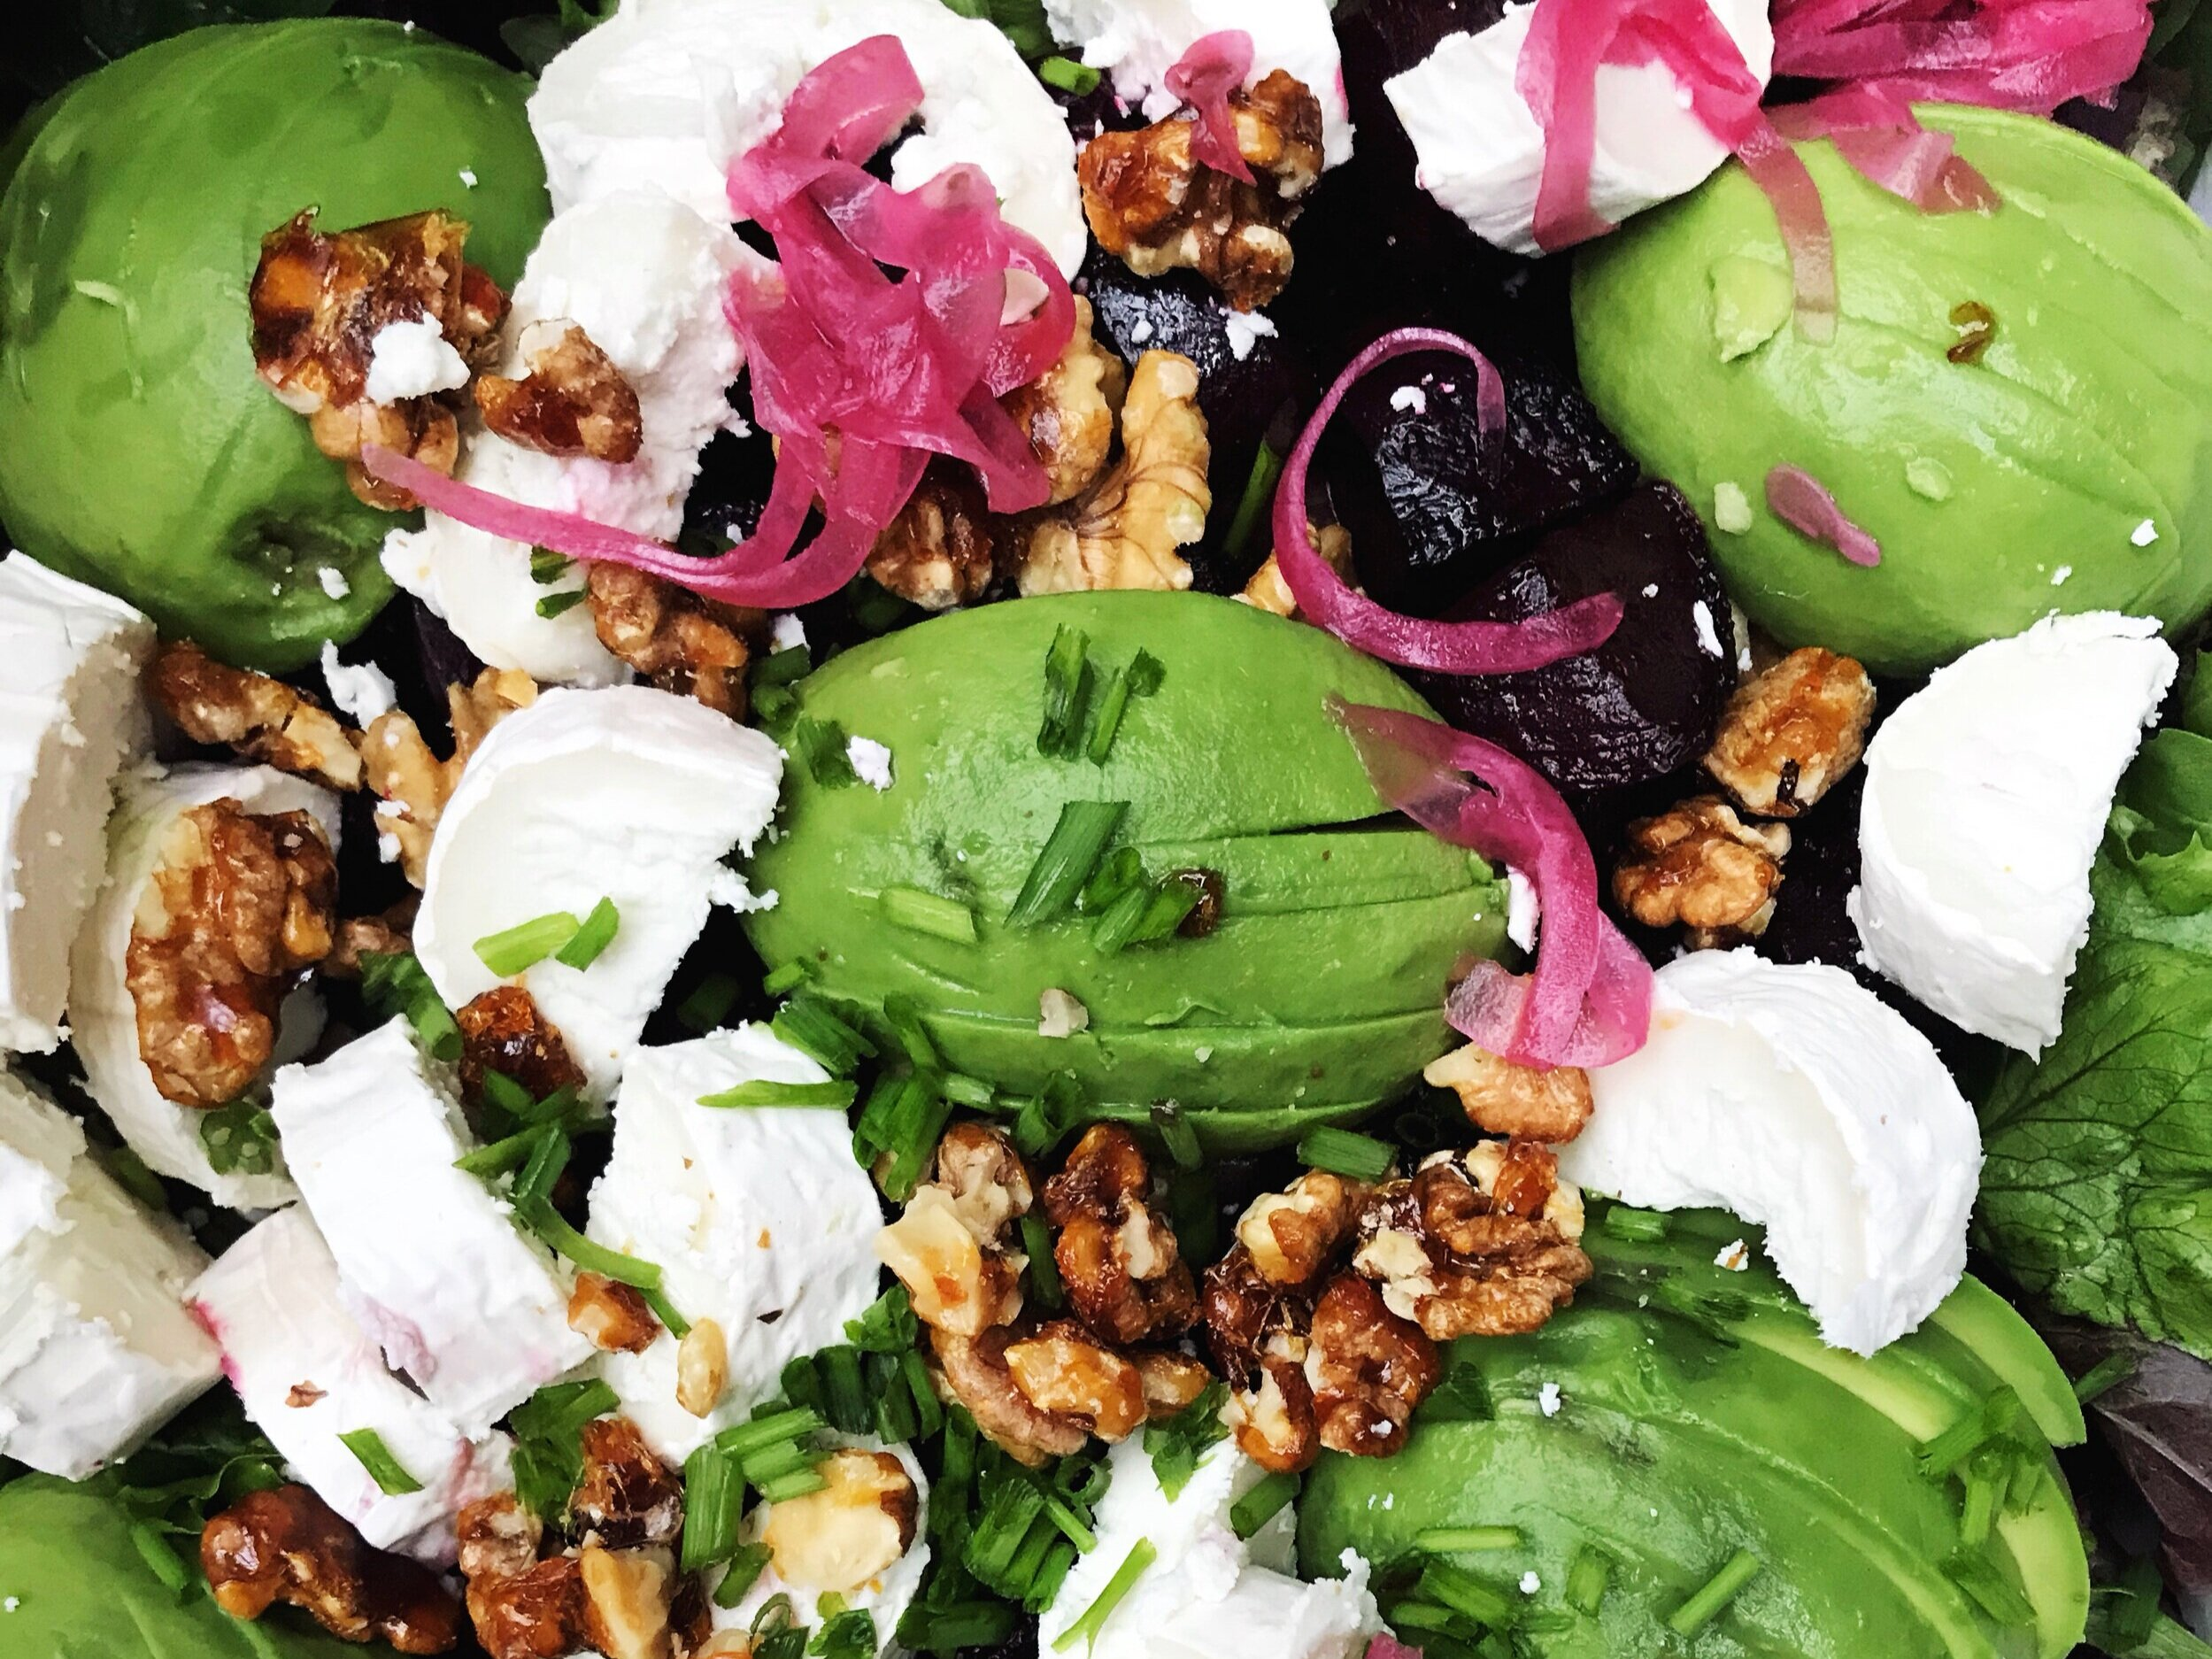 beet, and local goatscheese £8.00 - £8.00 per person or £40 for a platter for 5market greens, roast beets, caramelized walnuts, basil, goats cheese.add chicken + £1.5